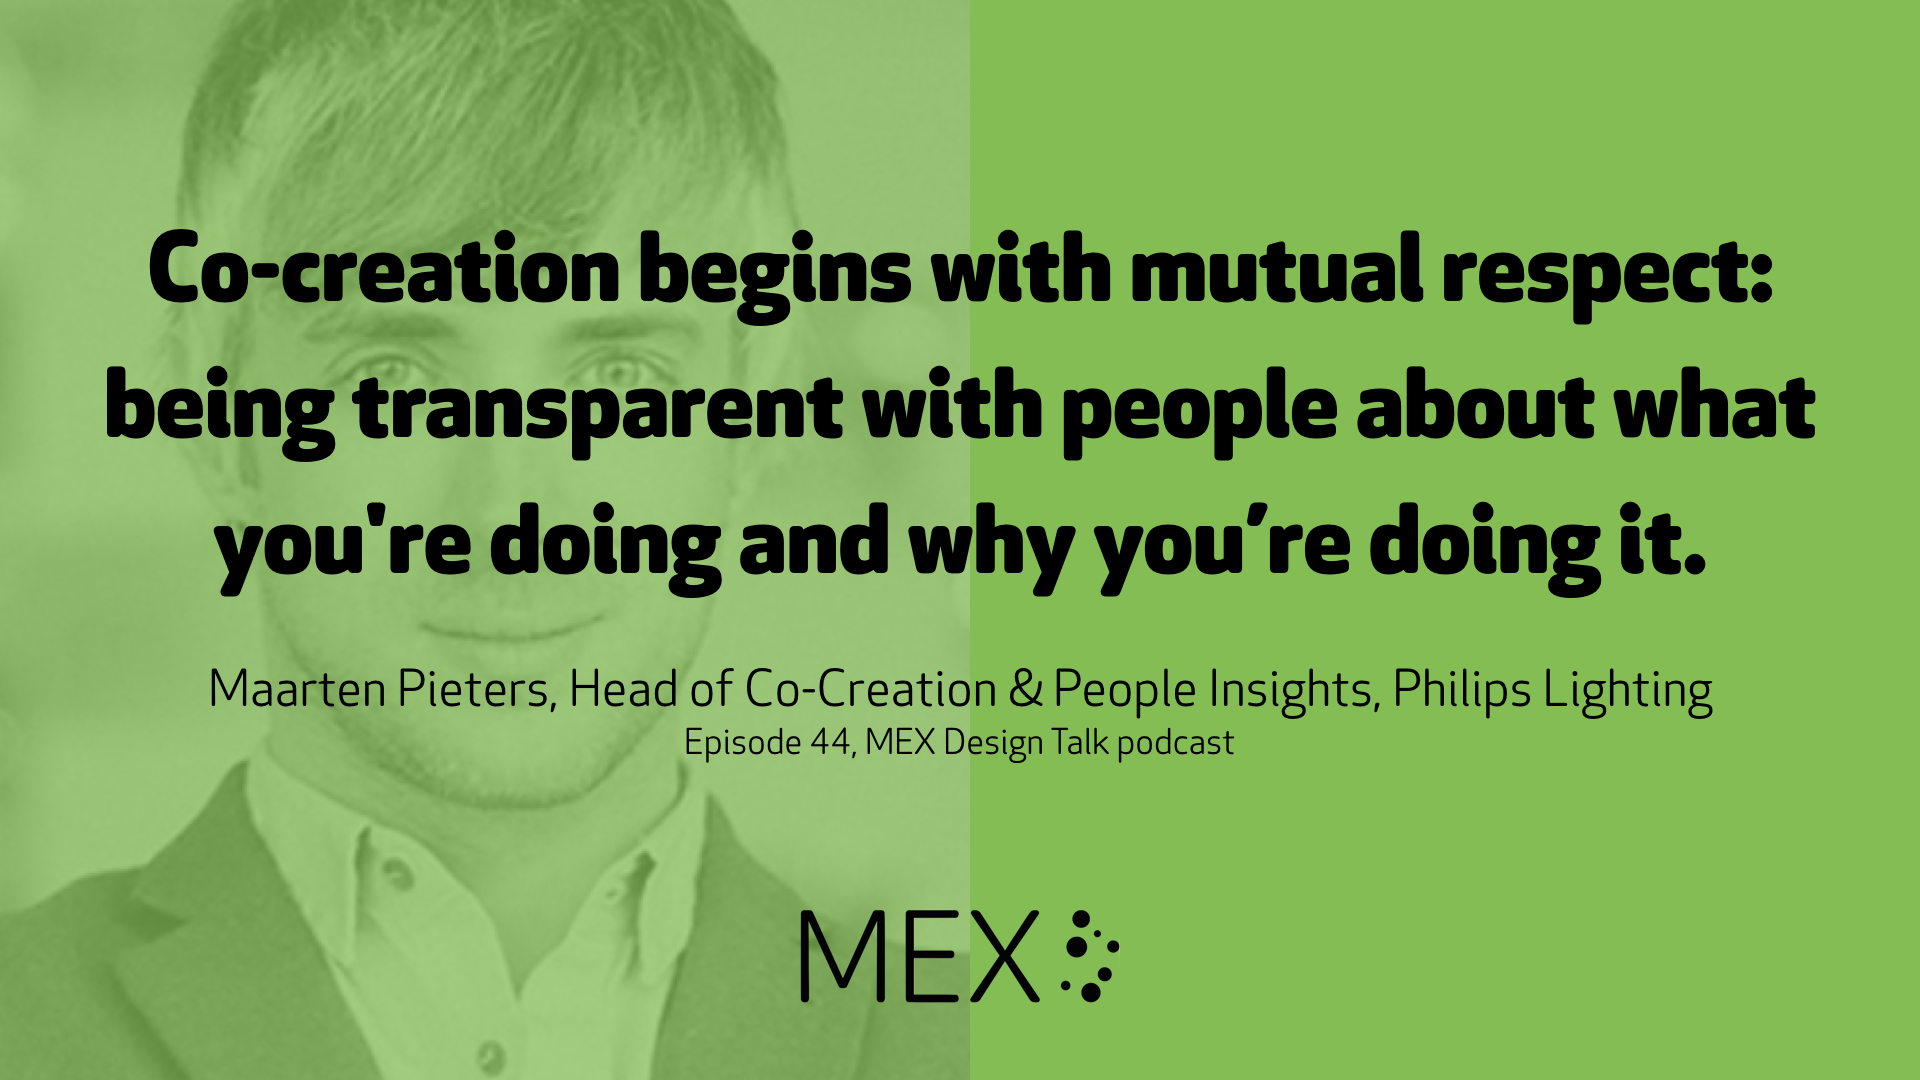 Co-creation begins with mutual respect: being transparent with people about what you're doing and why you're doing it.  Maarten Pieters, Head of Co-Creation & People Insights, Philips Lighting Episode 44, MEX Design Talk podcast